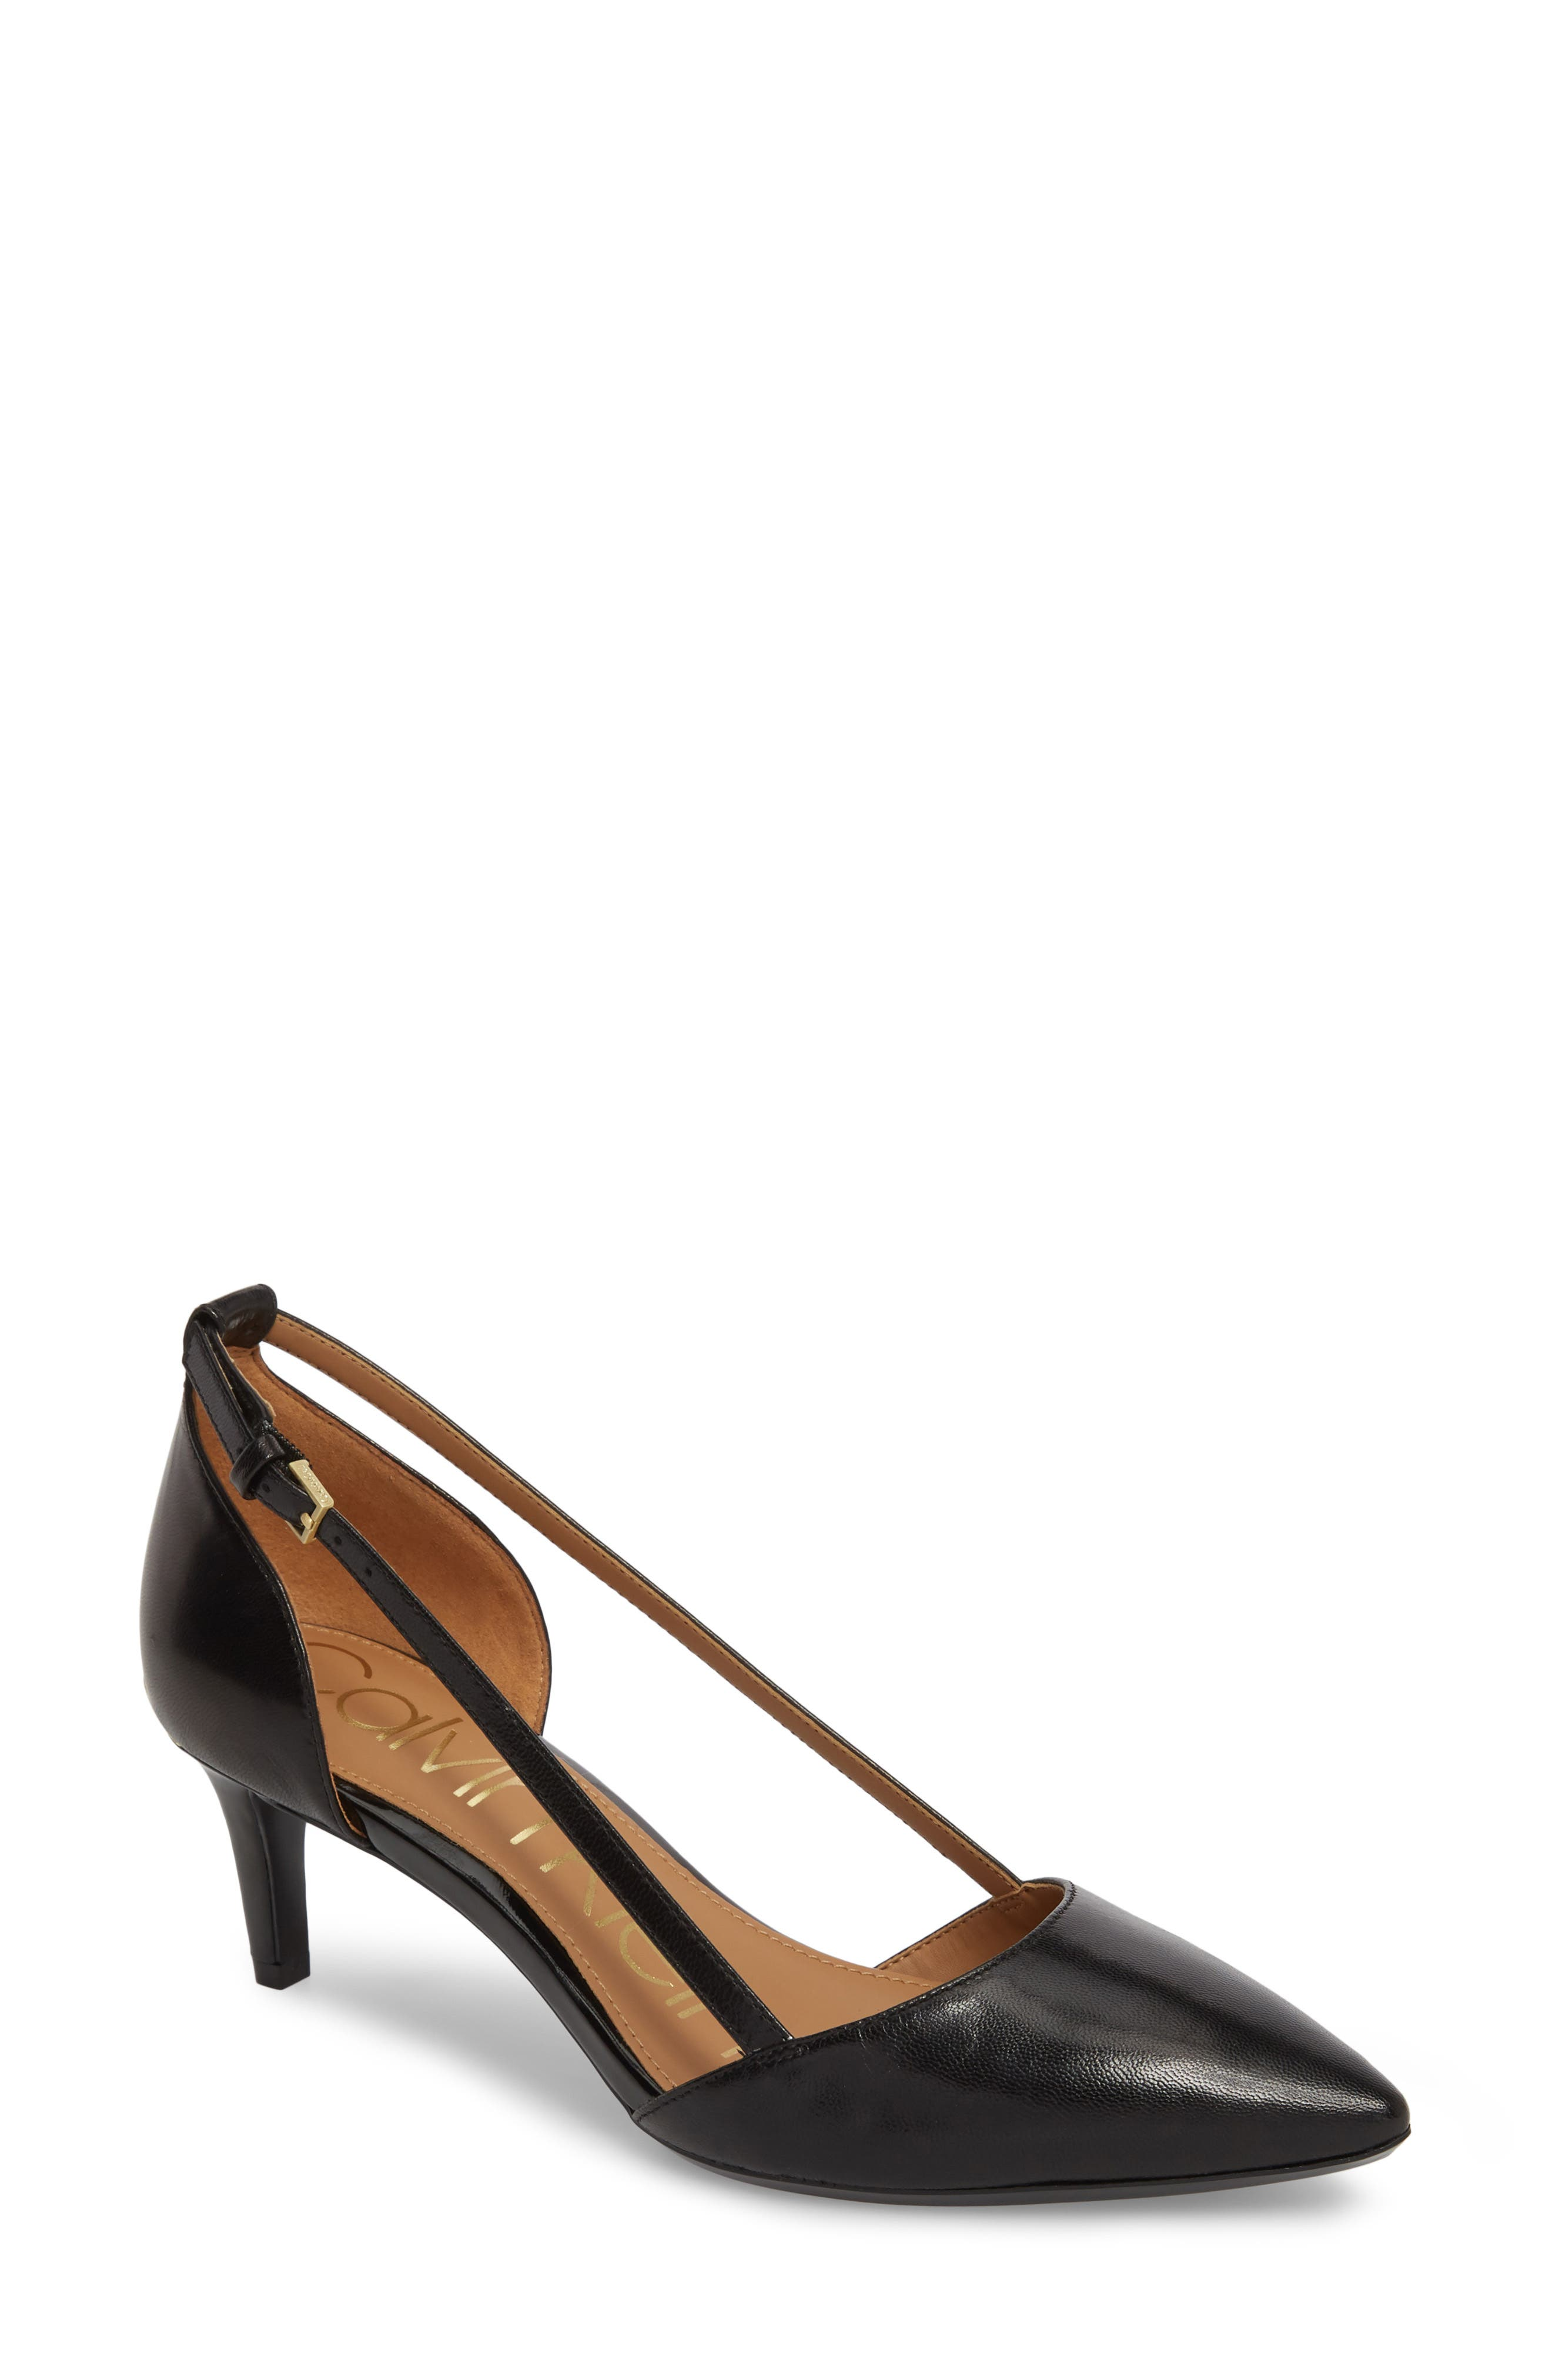 CALVIN KLEIN, Pashka Strappy Open Sided Pump, Main thumbnail 1, color, 001